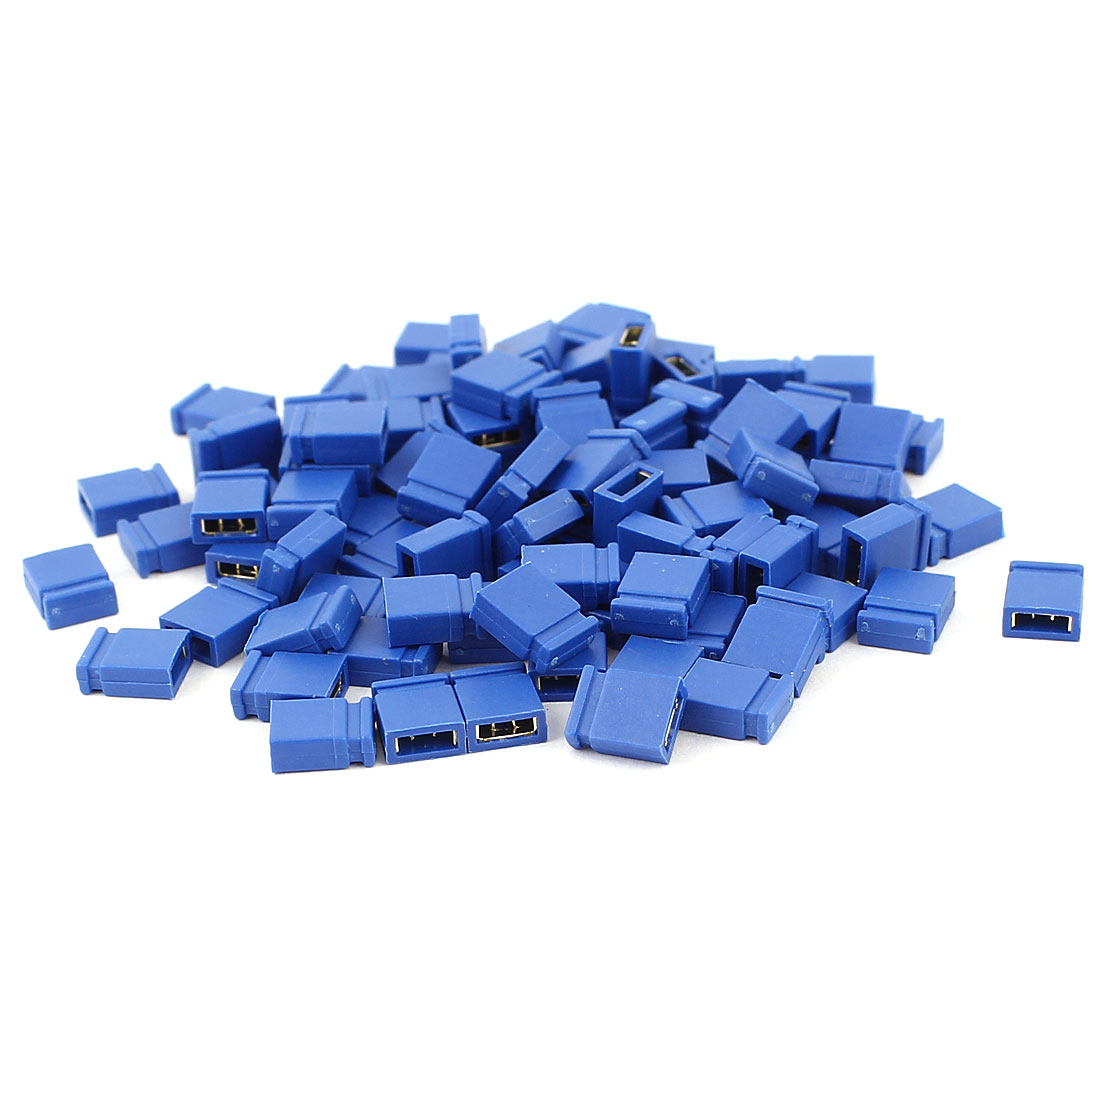 100 Pcs 2.54mm Pitch Circuit Board Shunts Short Jumper Cap Blue